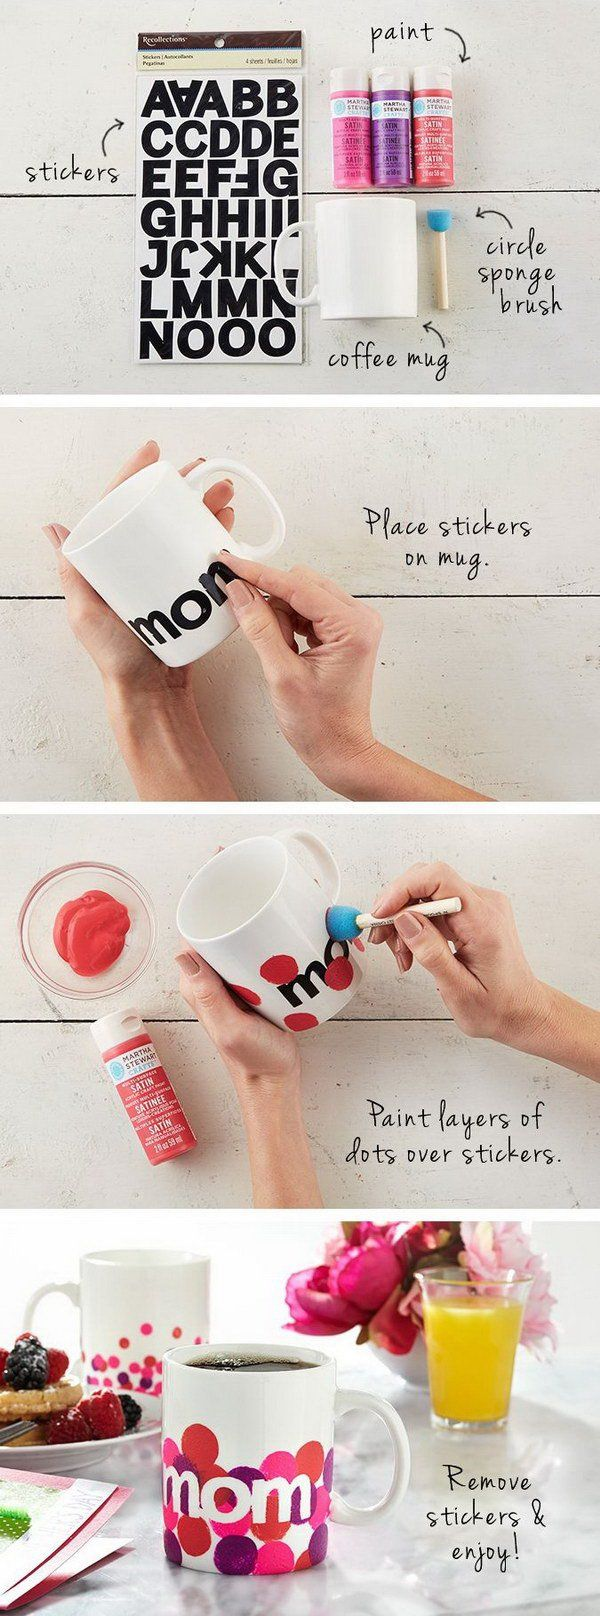 Simple-Mothers-Day-Gift-Ideas1